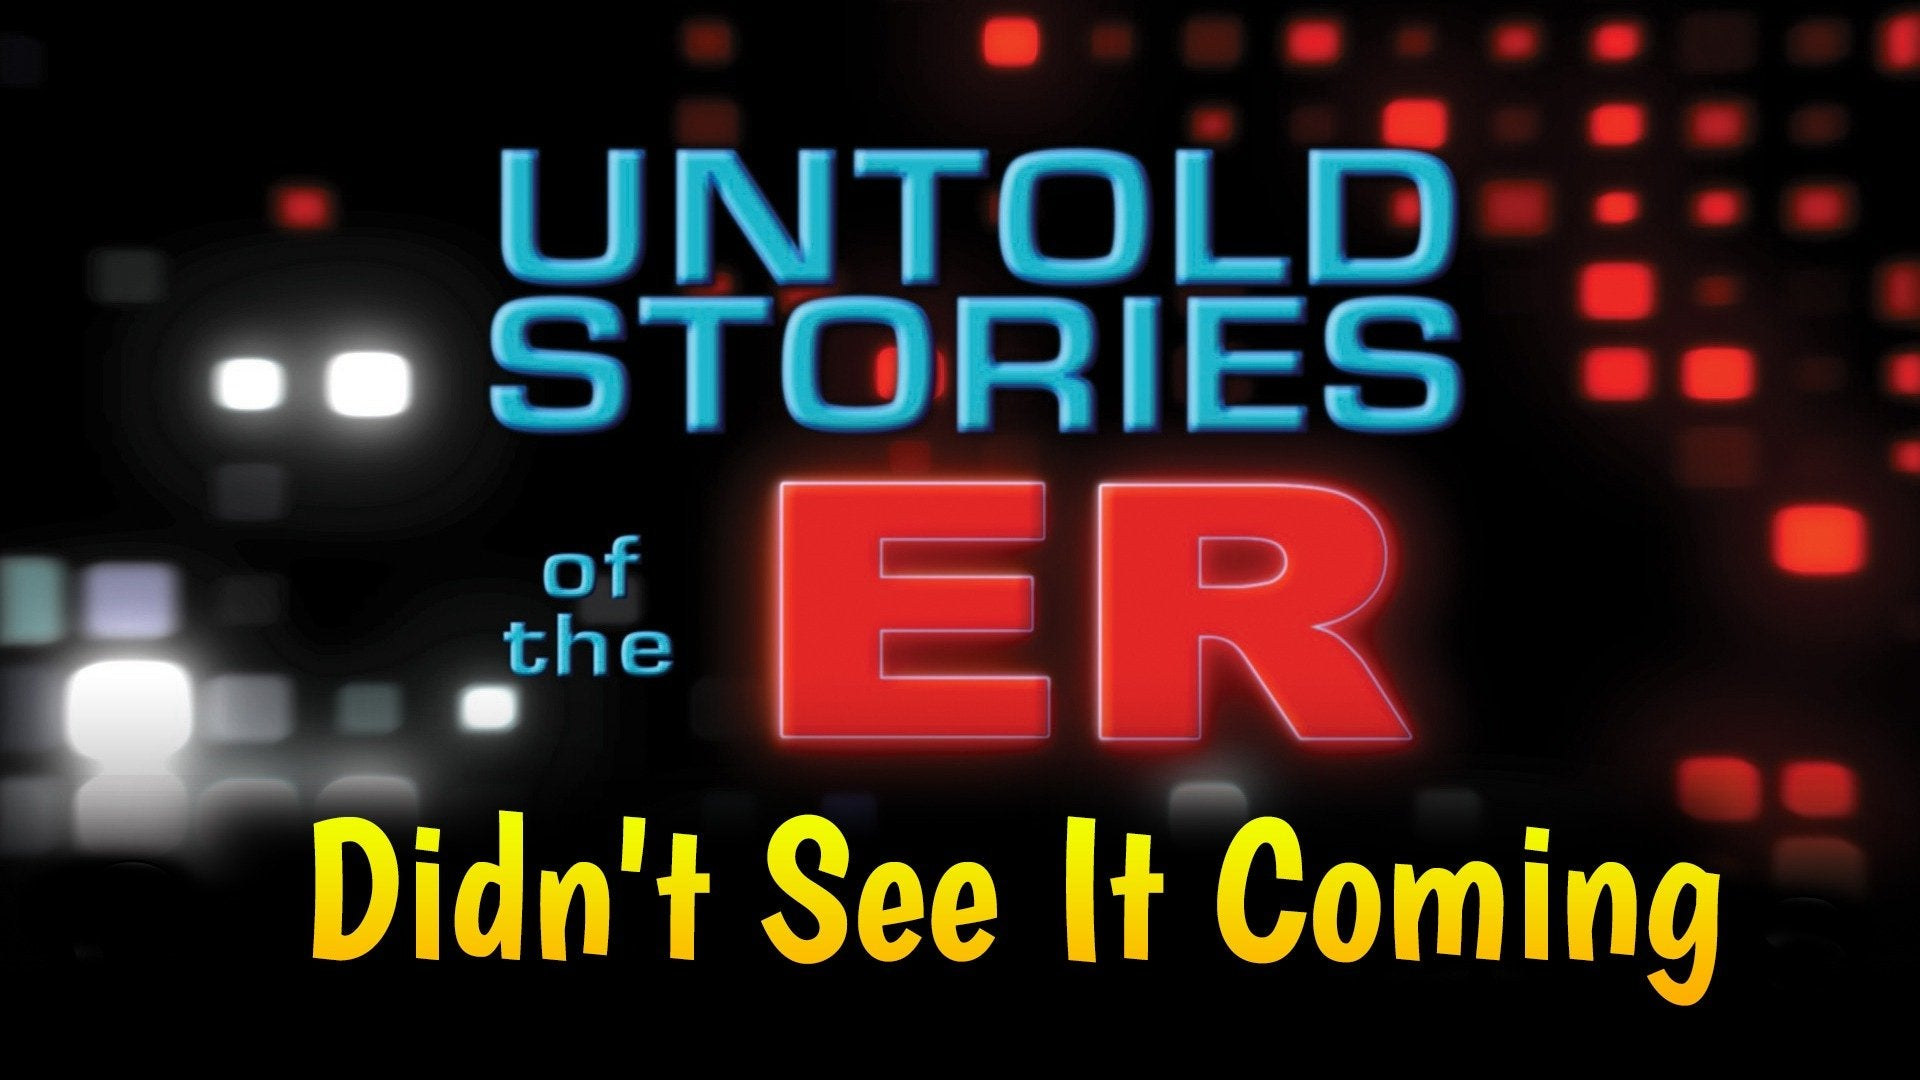 Untold Stories of the ER: Didn't See It Coming